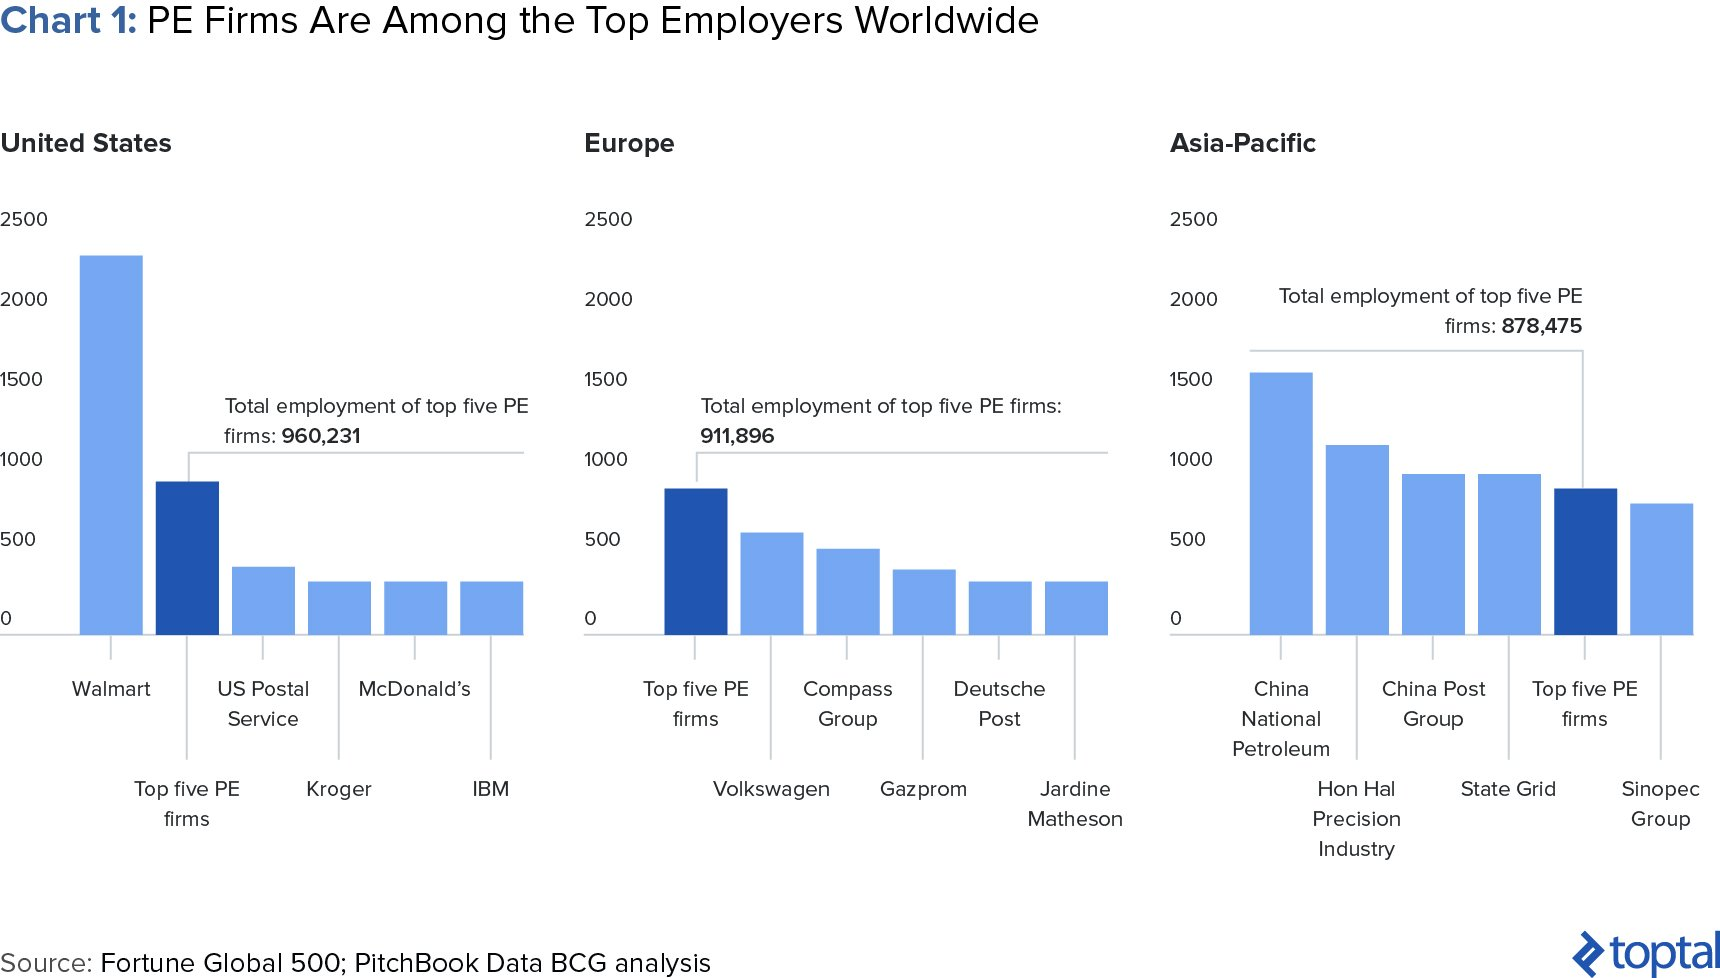 Chart 1: PE Firms Are Among the Top Employers Worldwide